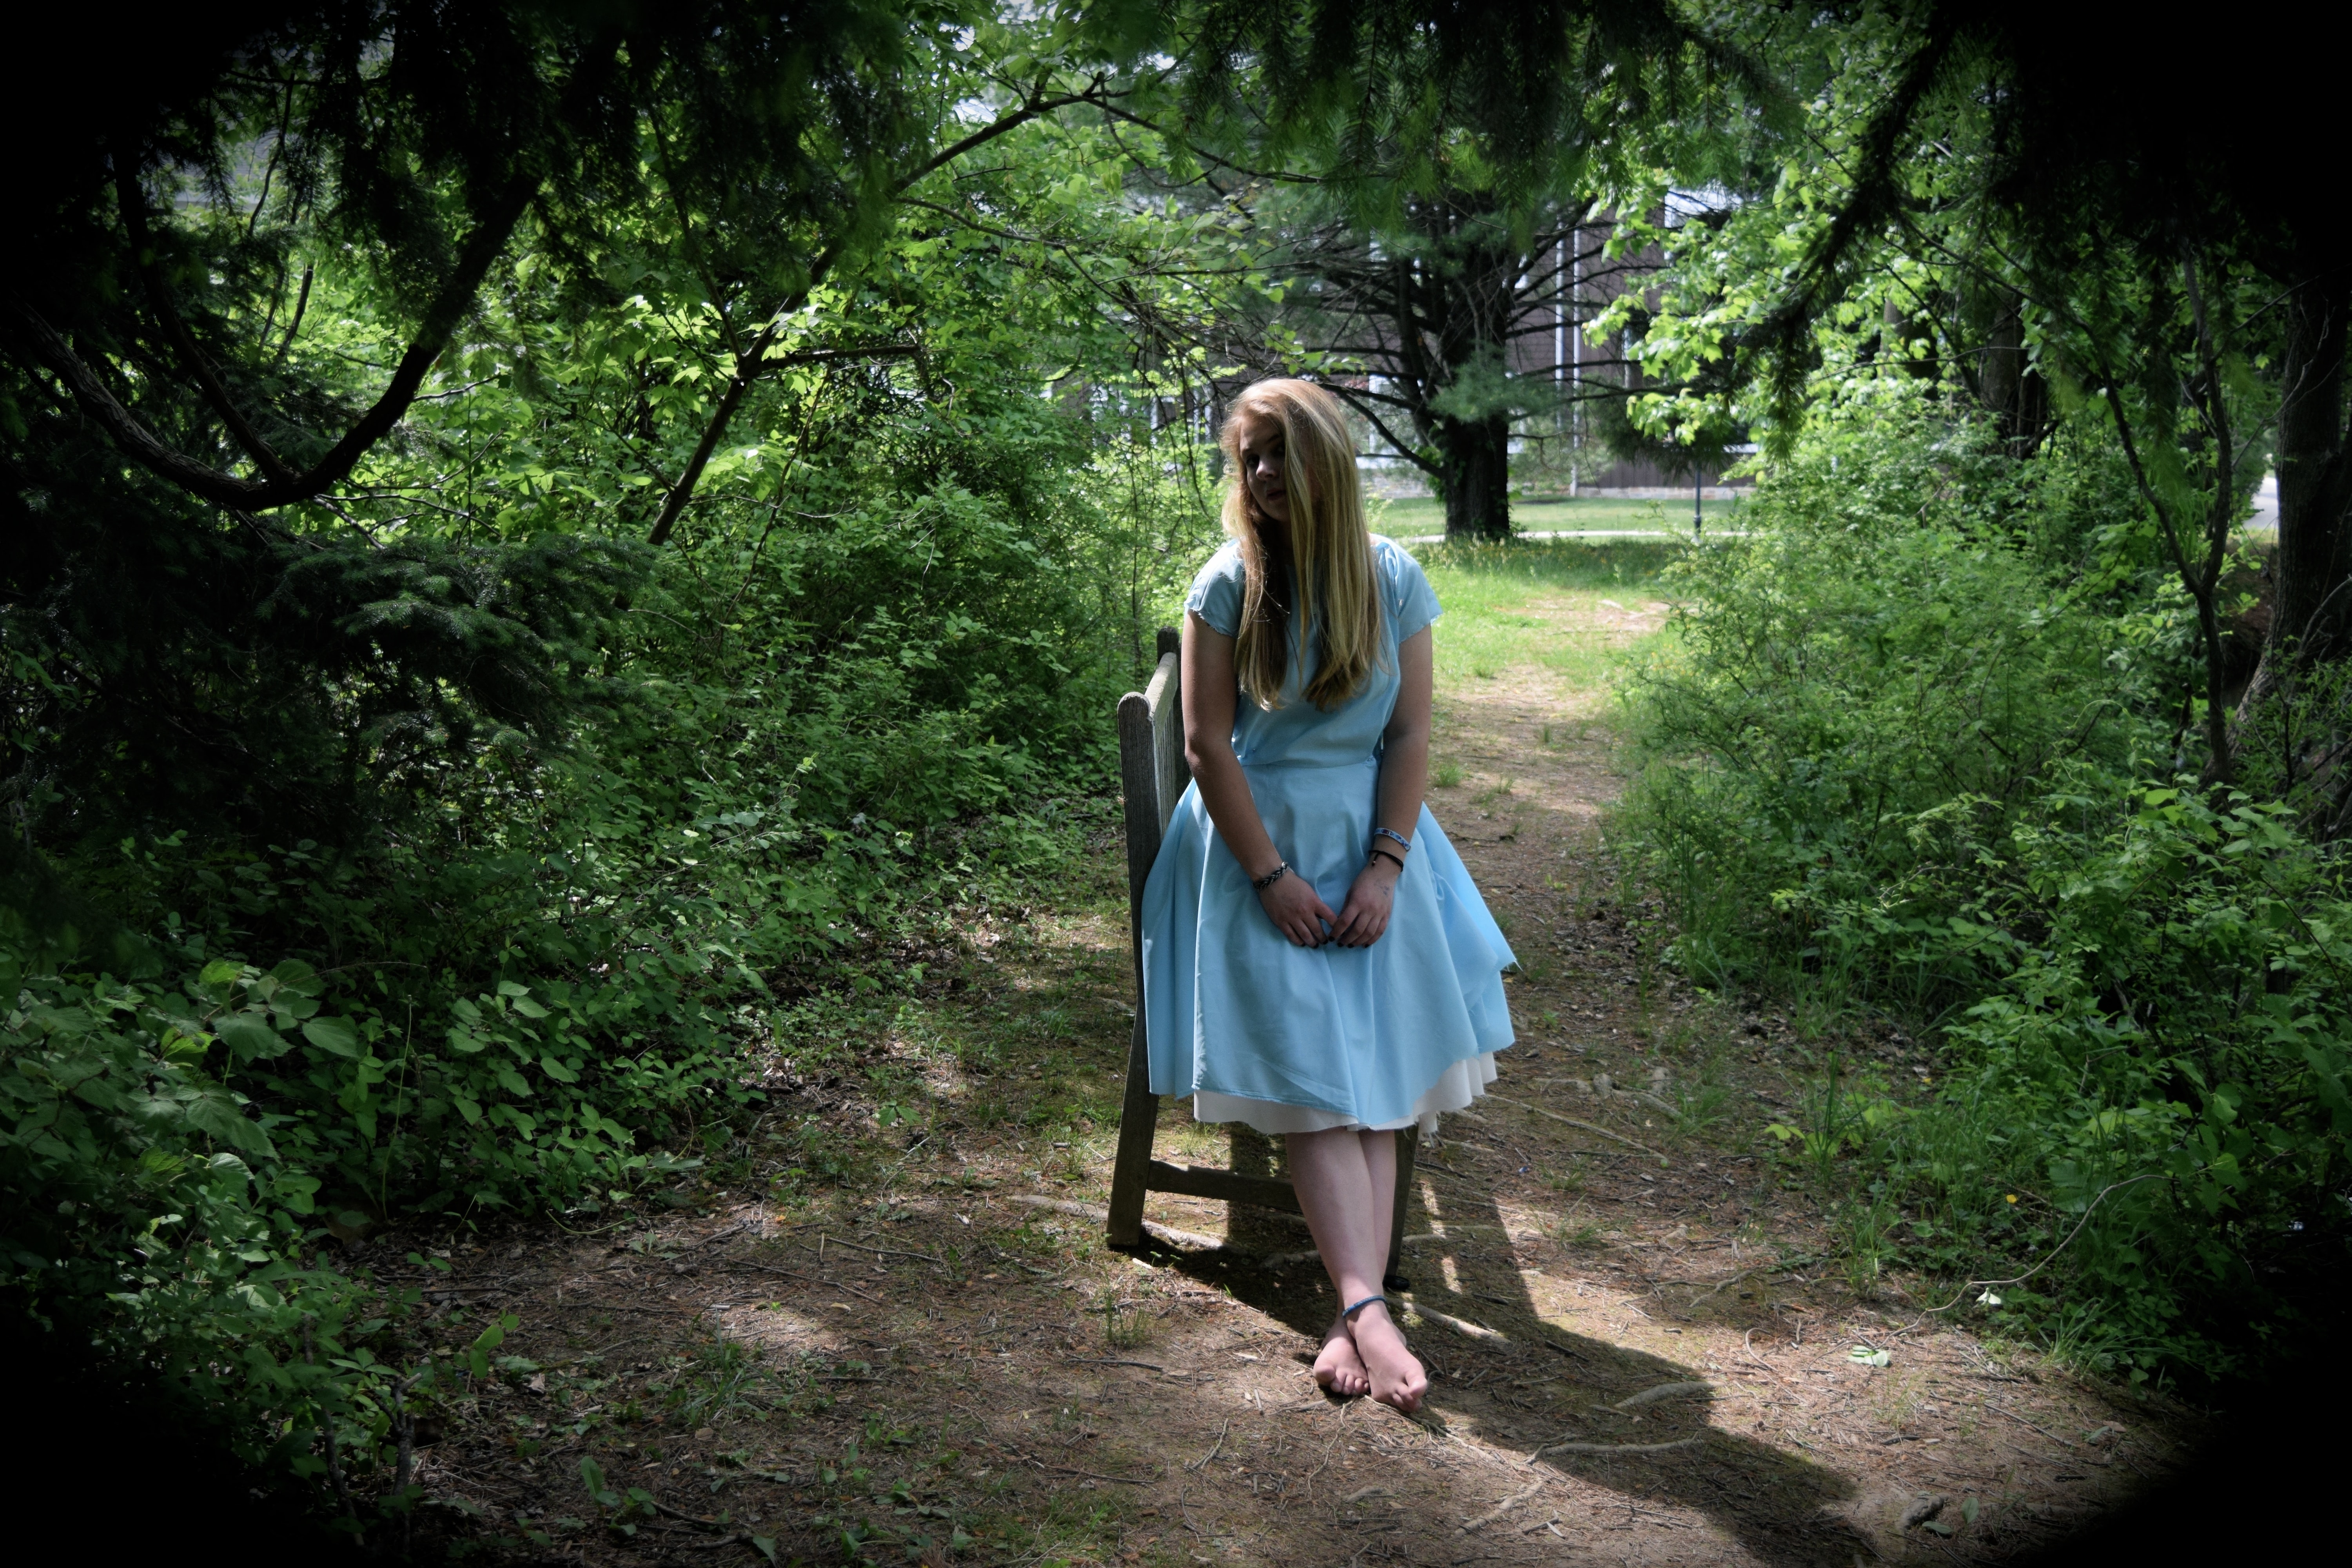 A young adult female in a white dress leaning on a chair in the middle of the woods.